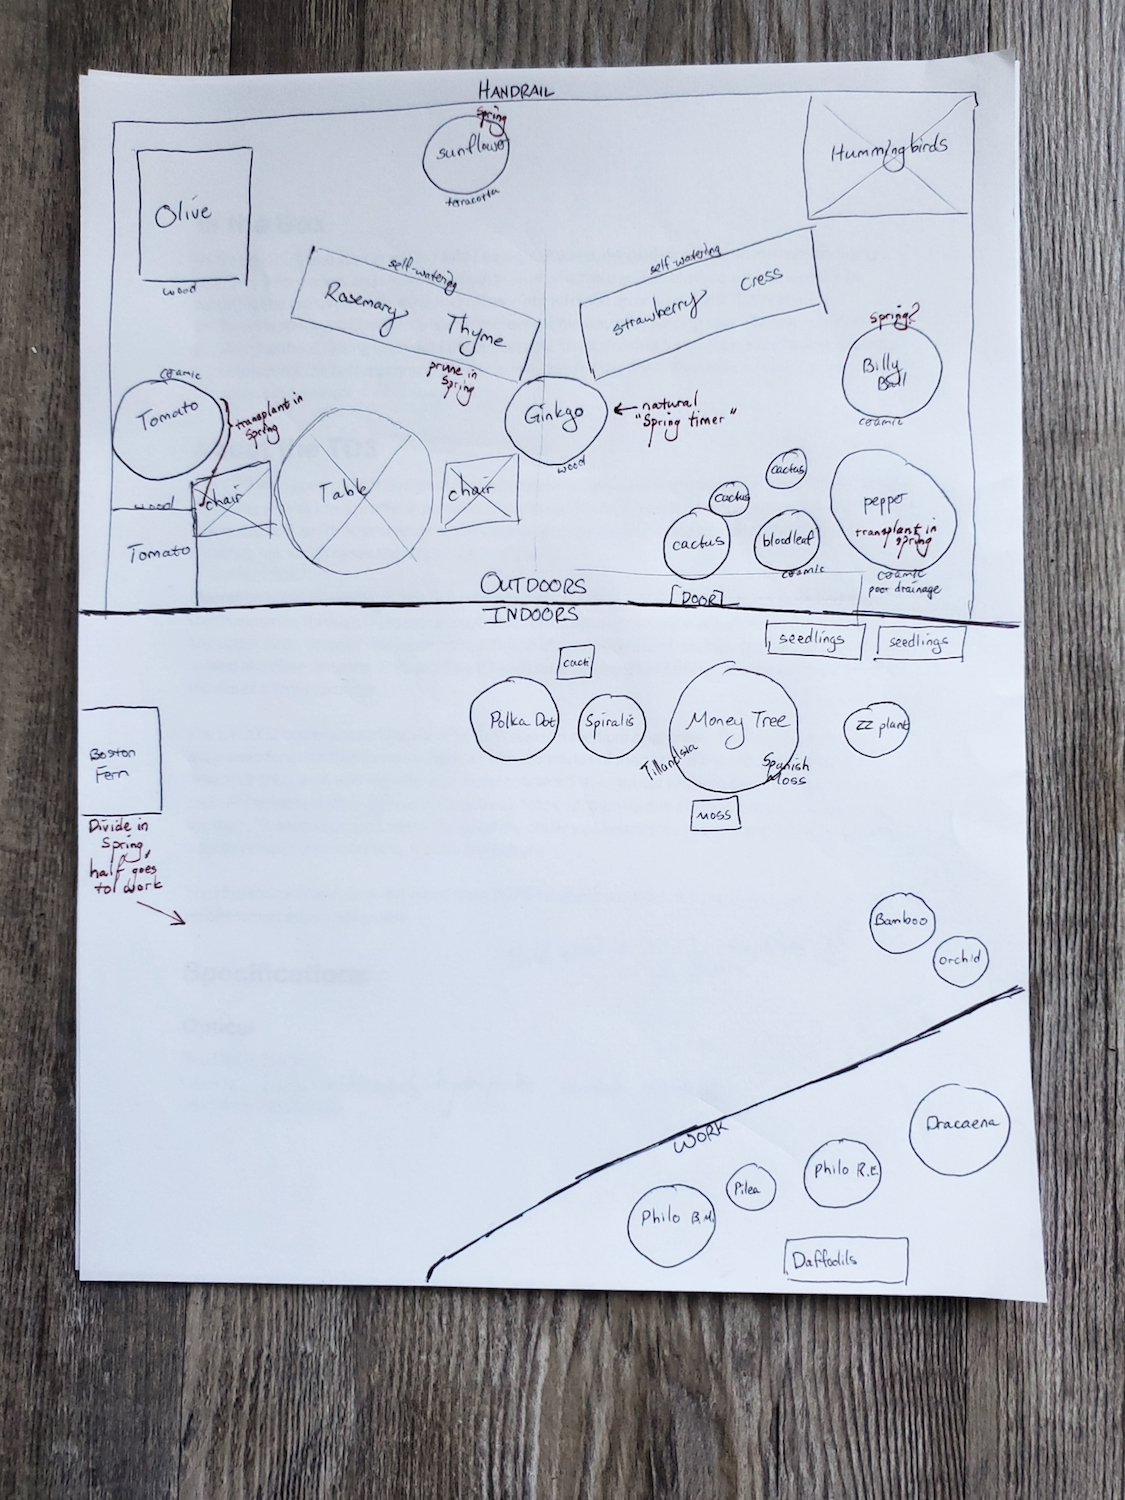 a plan for a garden drawn out on paper